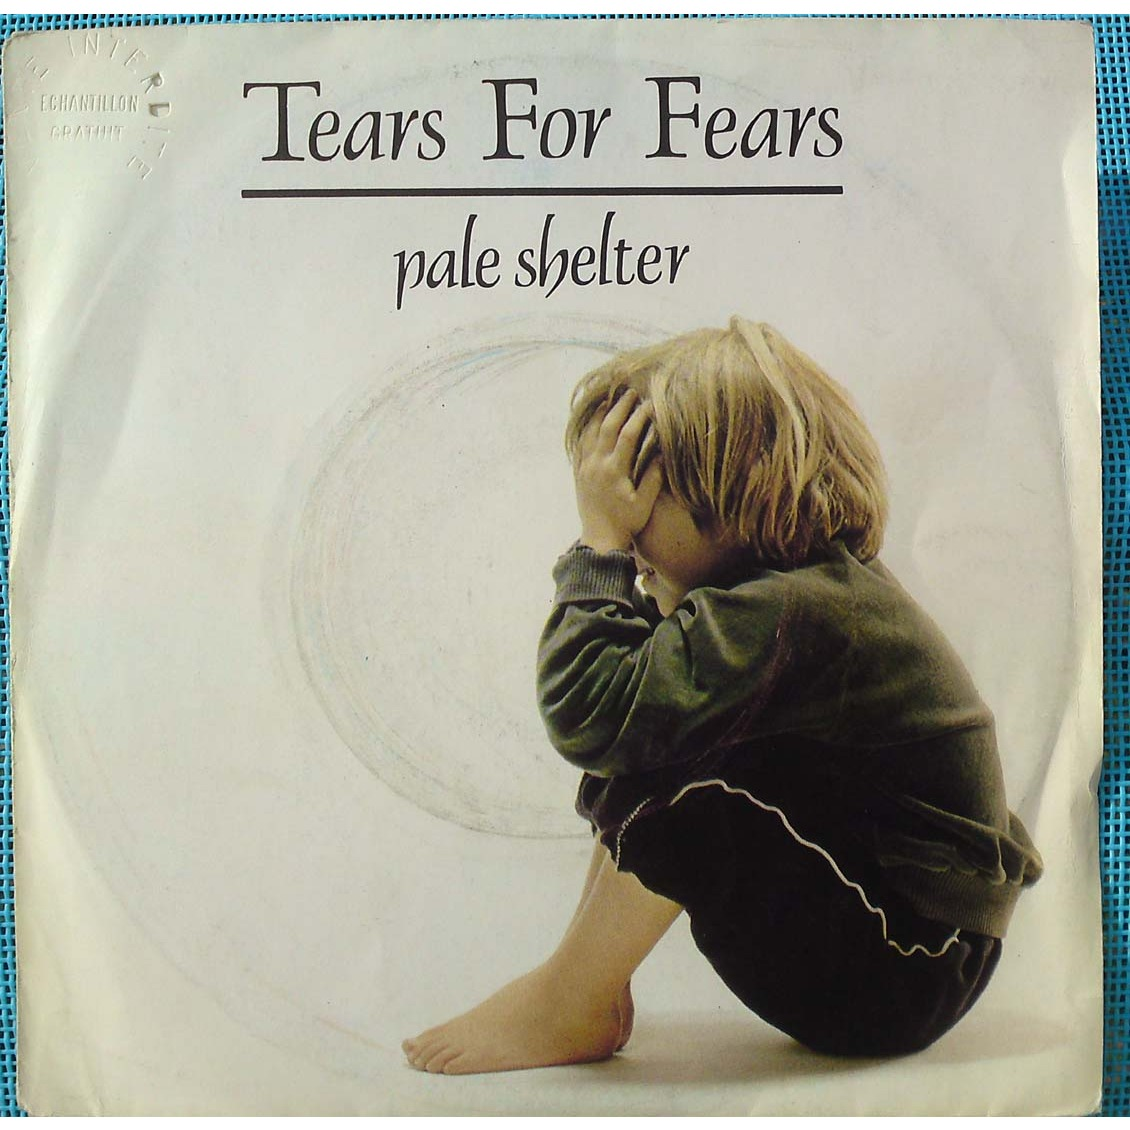 Tears For Fears - Pale Shelter Remix Stems + Ableton project